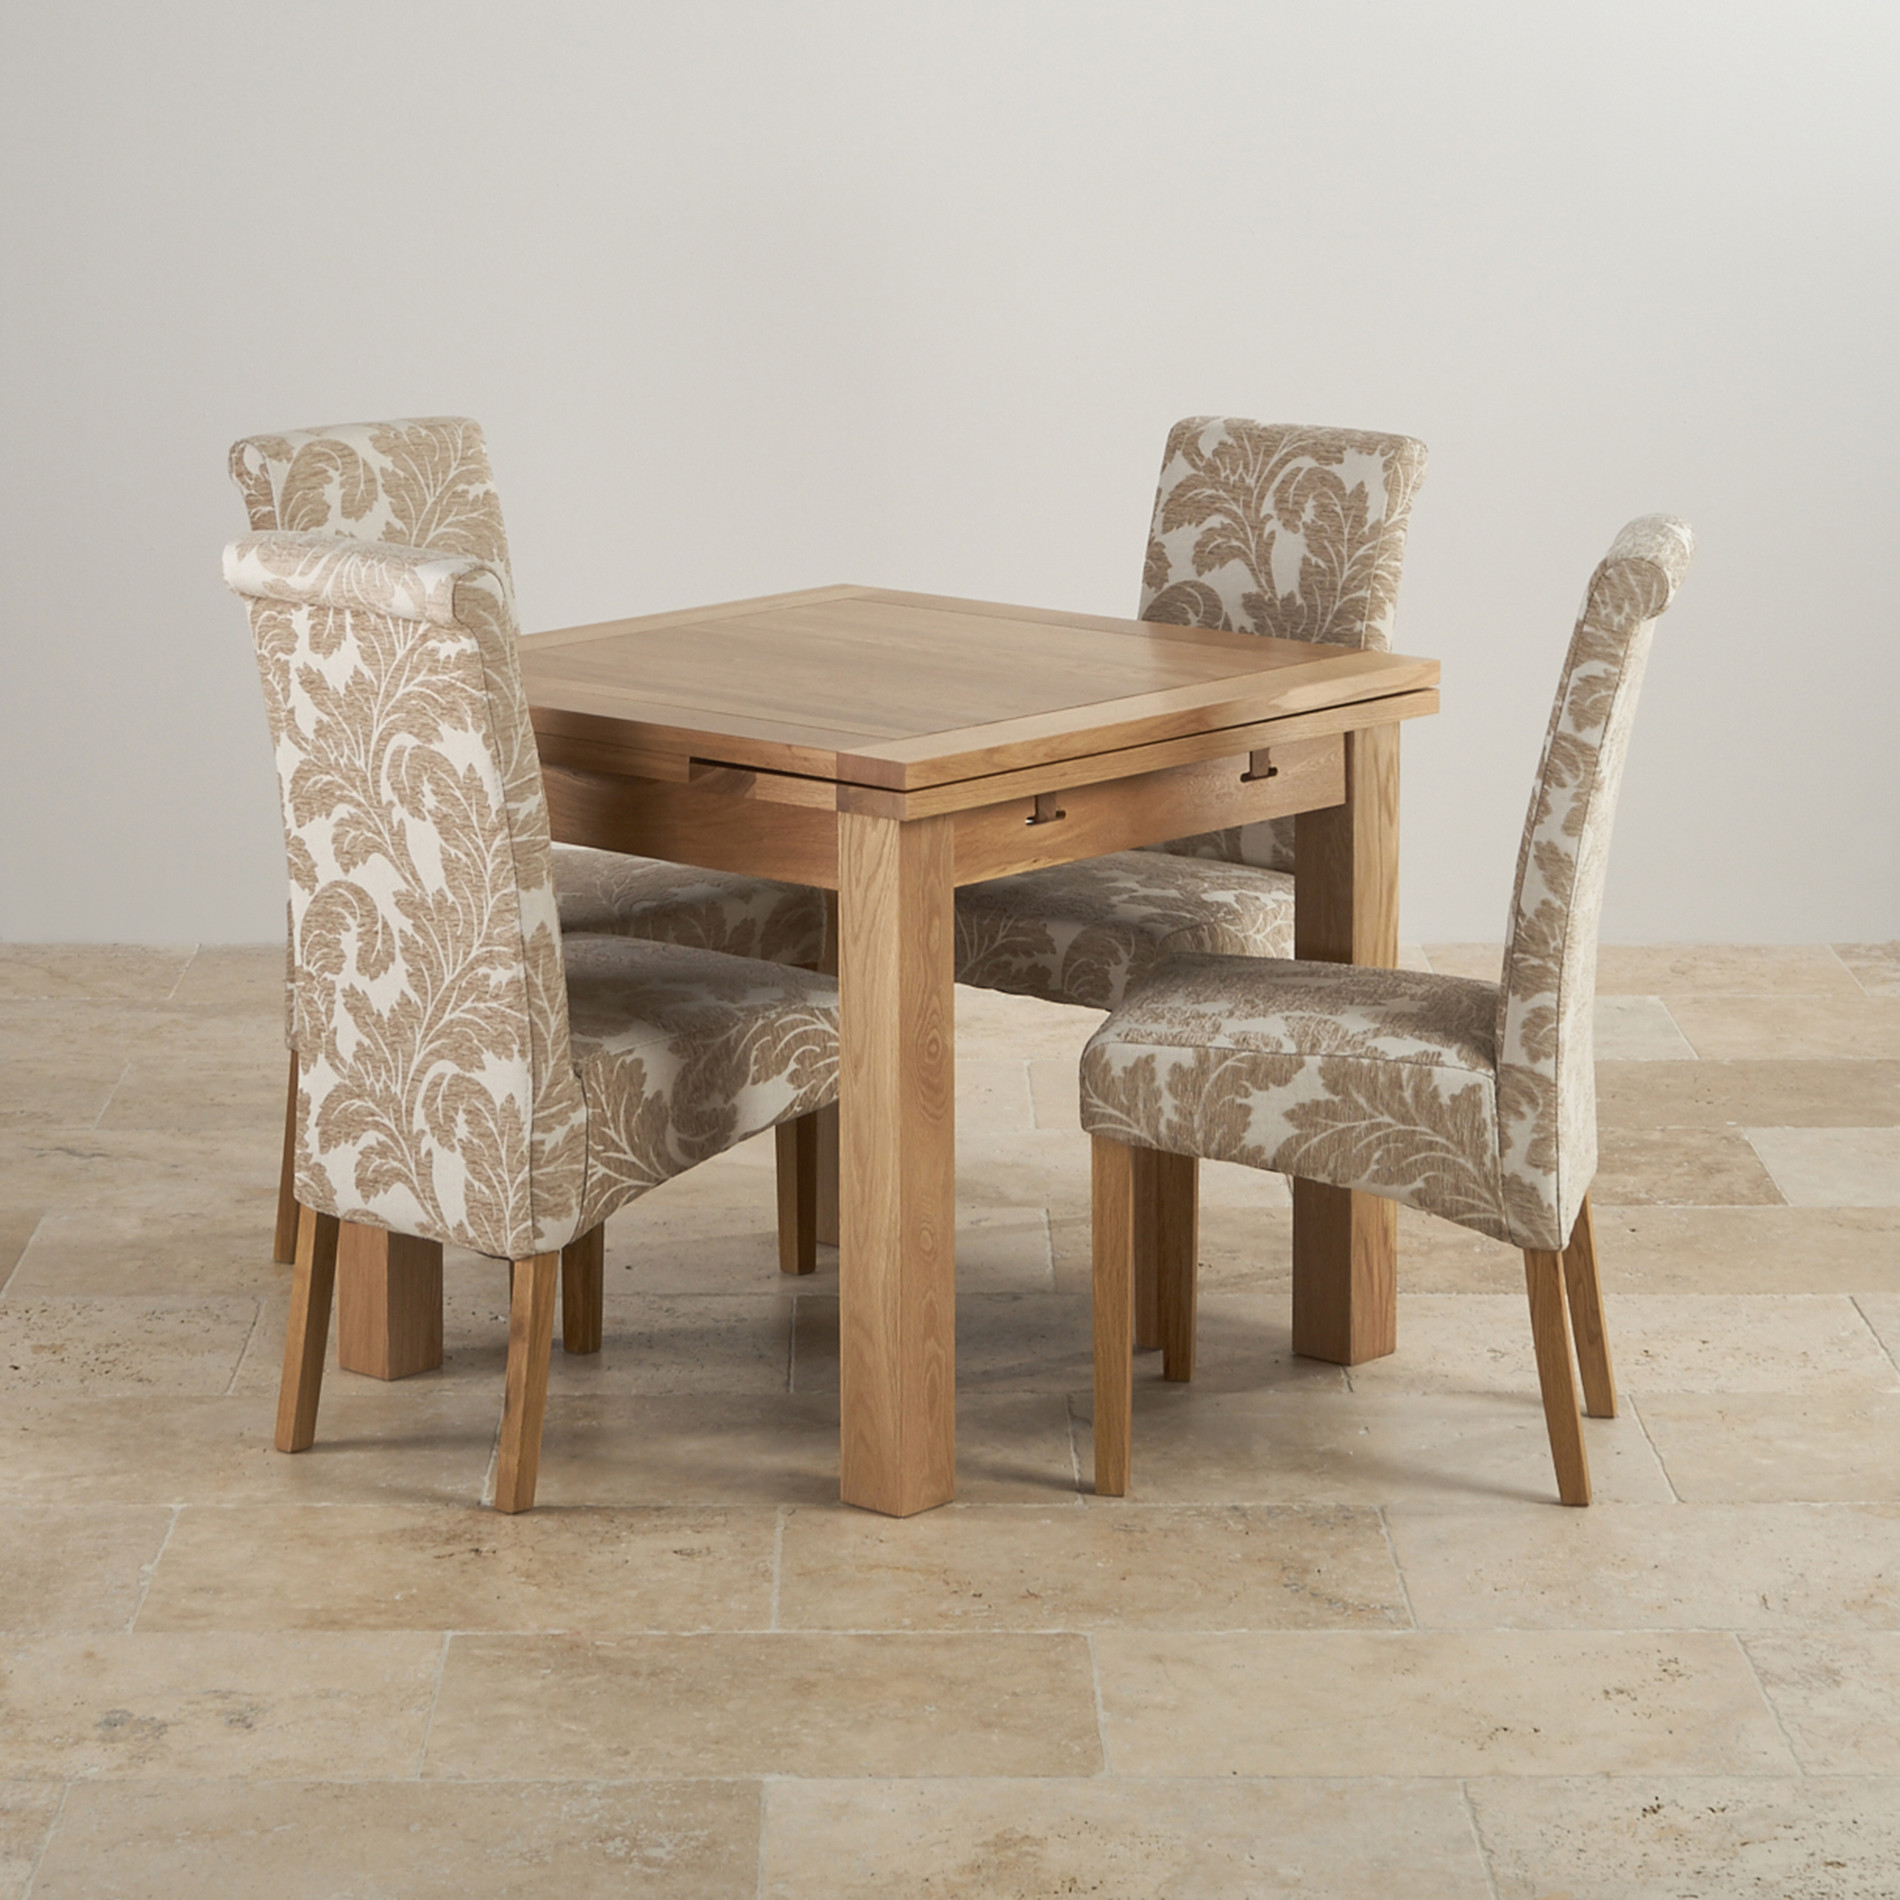 dorset oak dining set 3ft table with 4 beige chairs